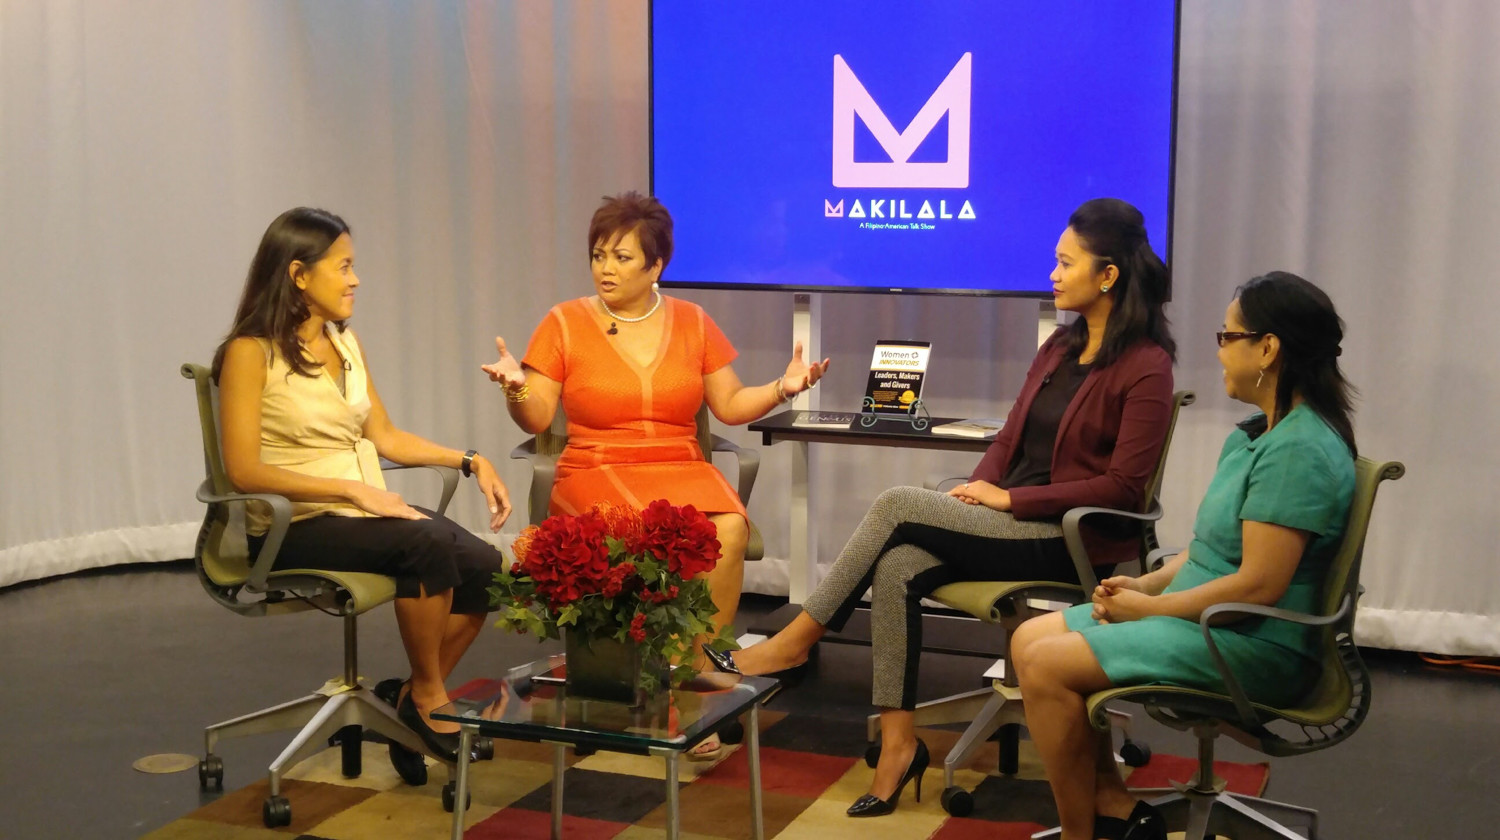 'Makilala TV' hosts Cristina D.C. Pastor, Jenjen Furer and Rachelle Ocampo discuss women's leadership roles with a guest. The Filipino-American show about culture and current events is in its fifth season, but just started airing on BronxNet.